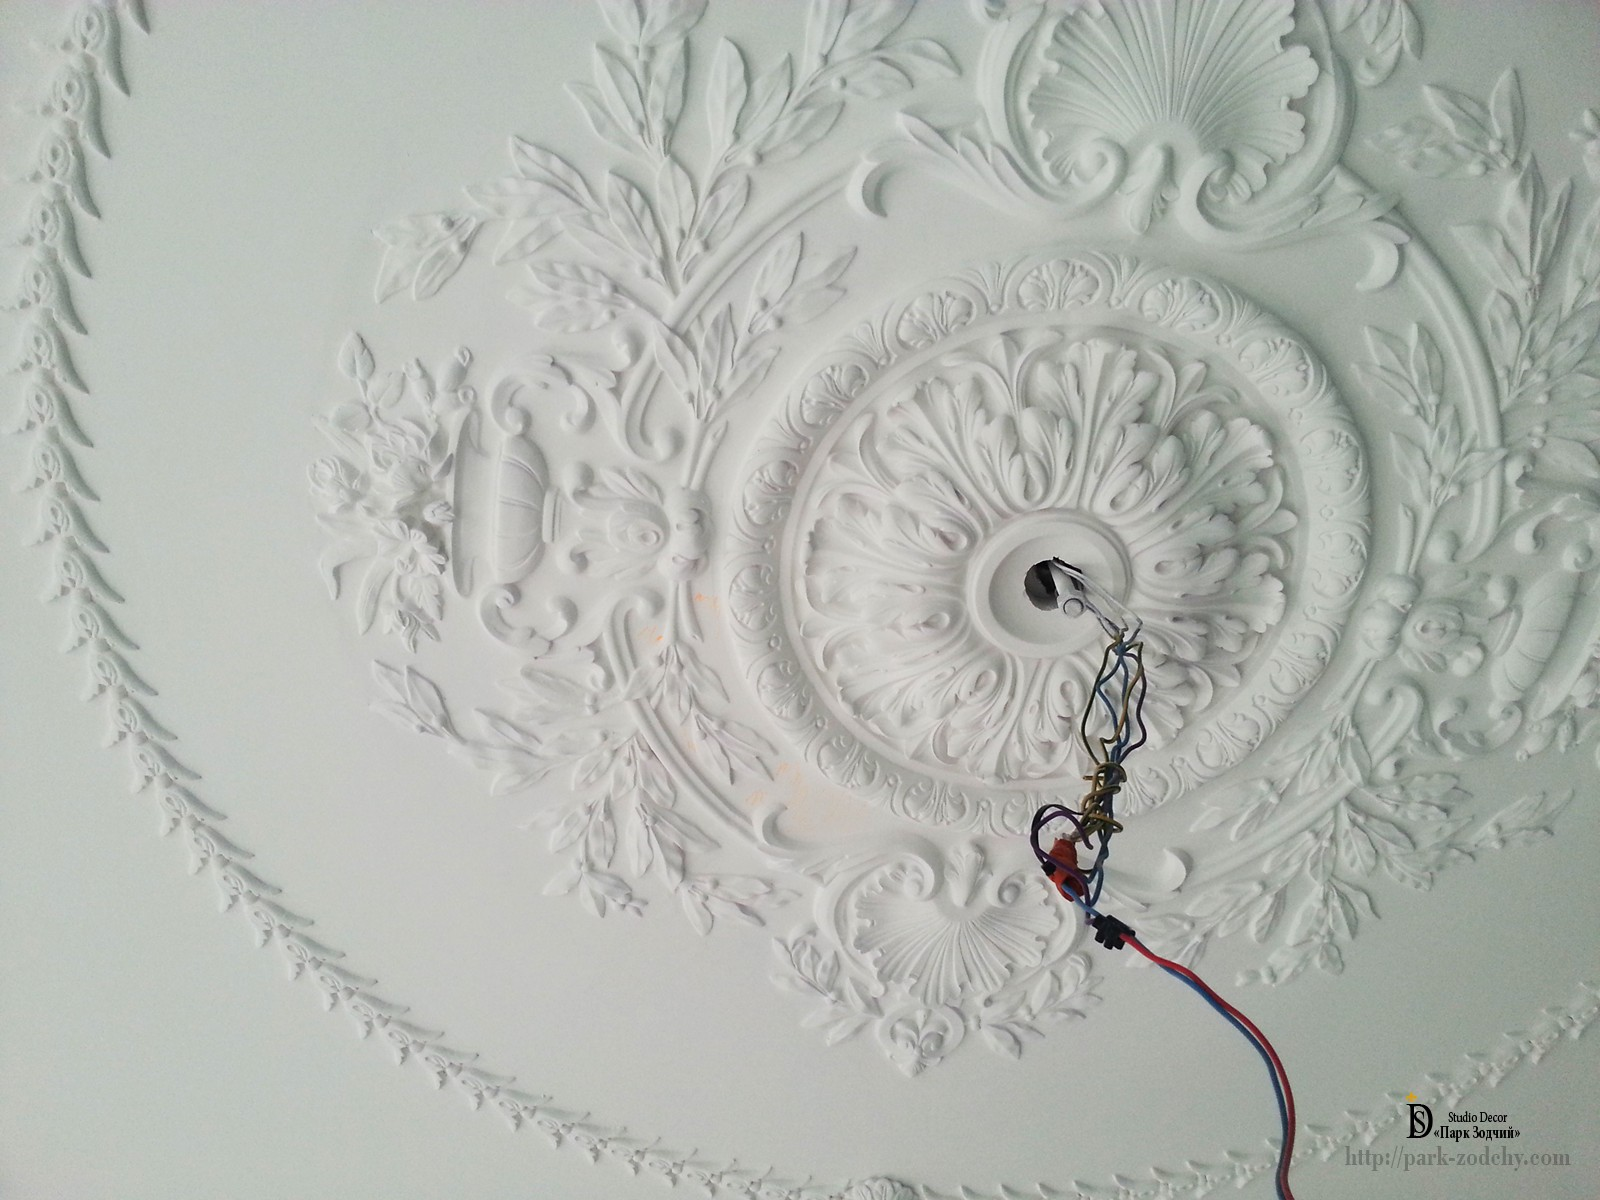 the stucco decoration of the ceiling of the invoice outlet